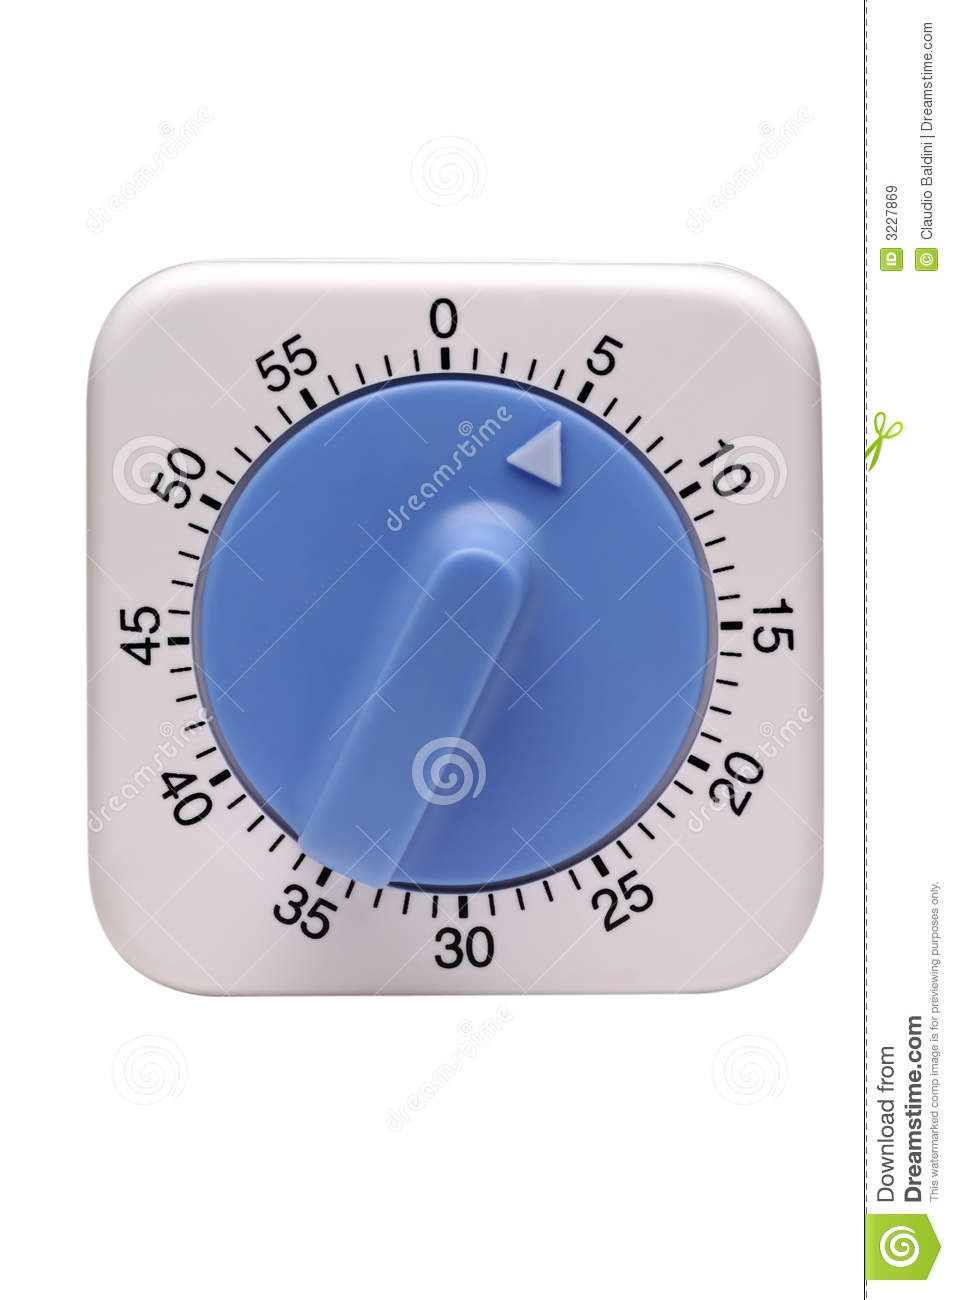 timer in 5 minutes stock image image of isolated concept 3227869